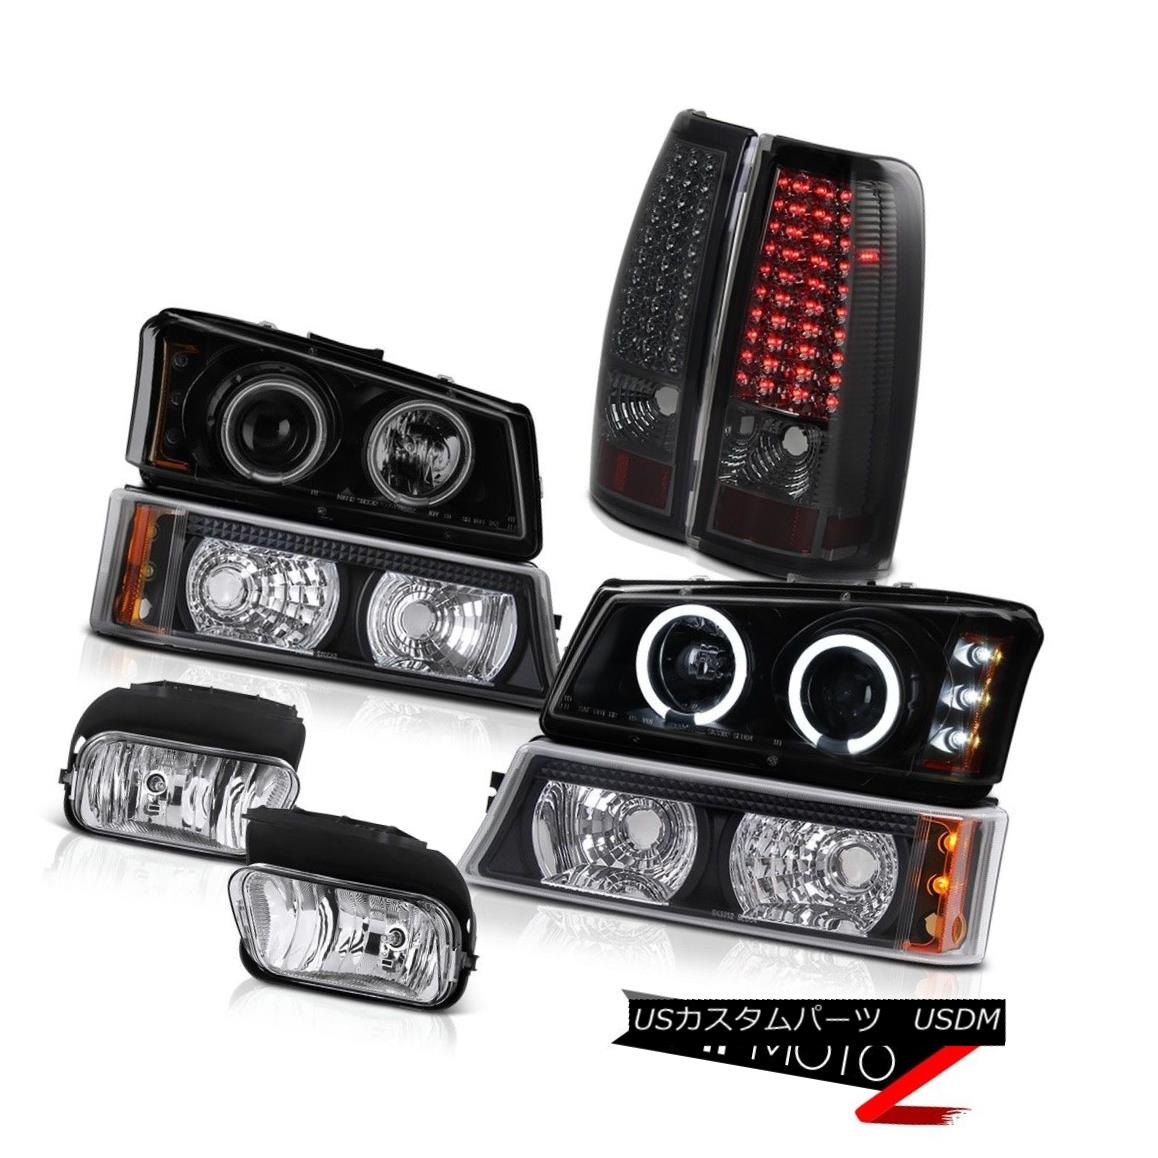 テールライト 03-06 Vortec Max CCFL Halo Headlight Black Signal LED Taillamps Driving Foglight 03-06 Vortec Max CCFL HaloヘッドライトブラックシグナルLEDタイルランプFoglightの駆動